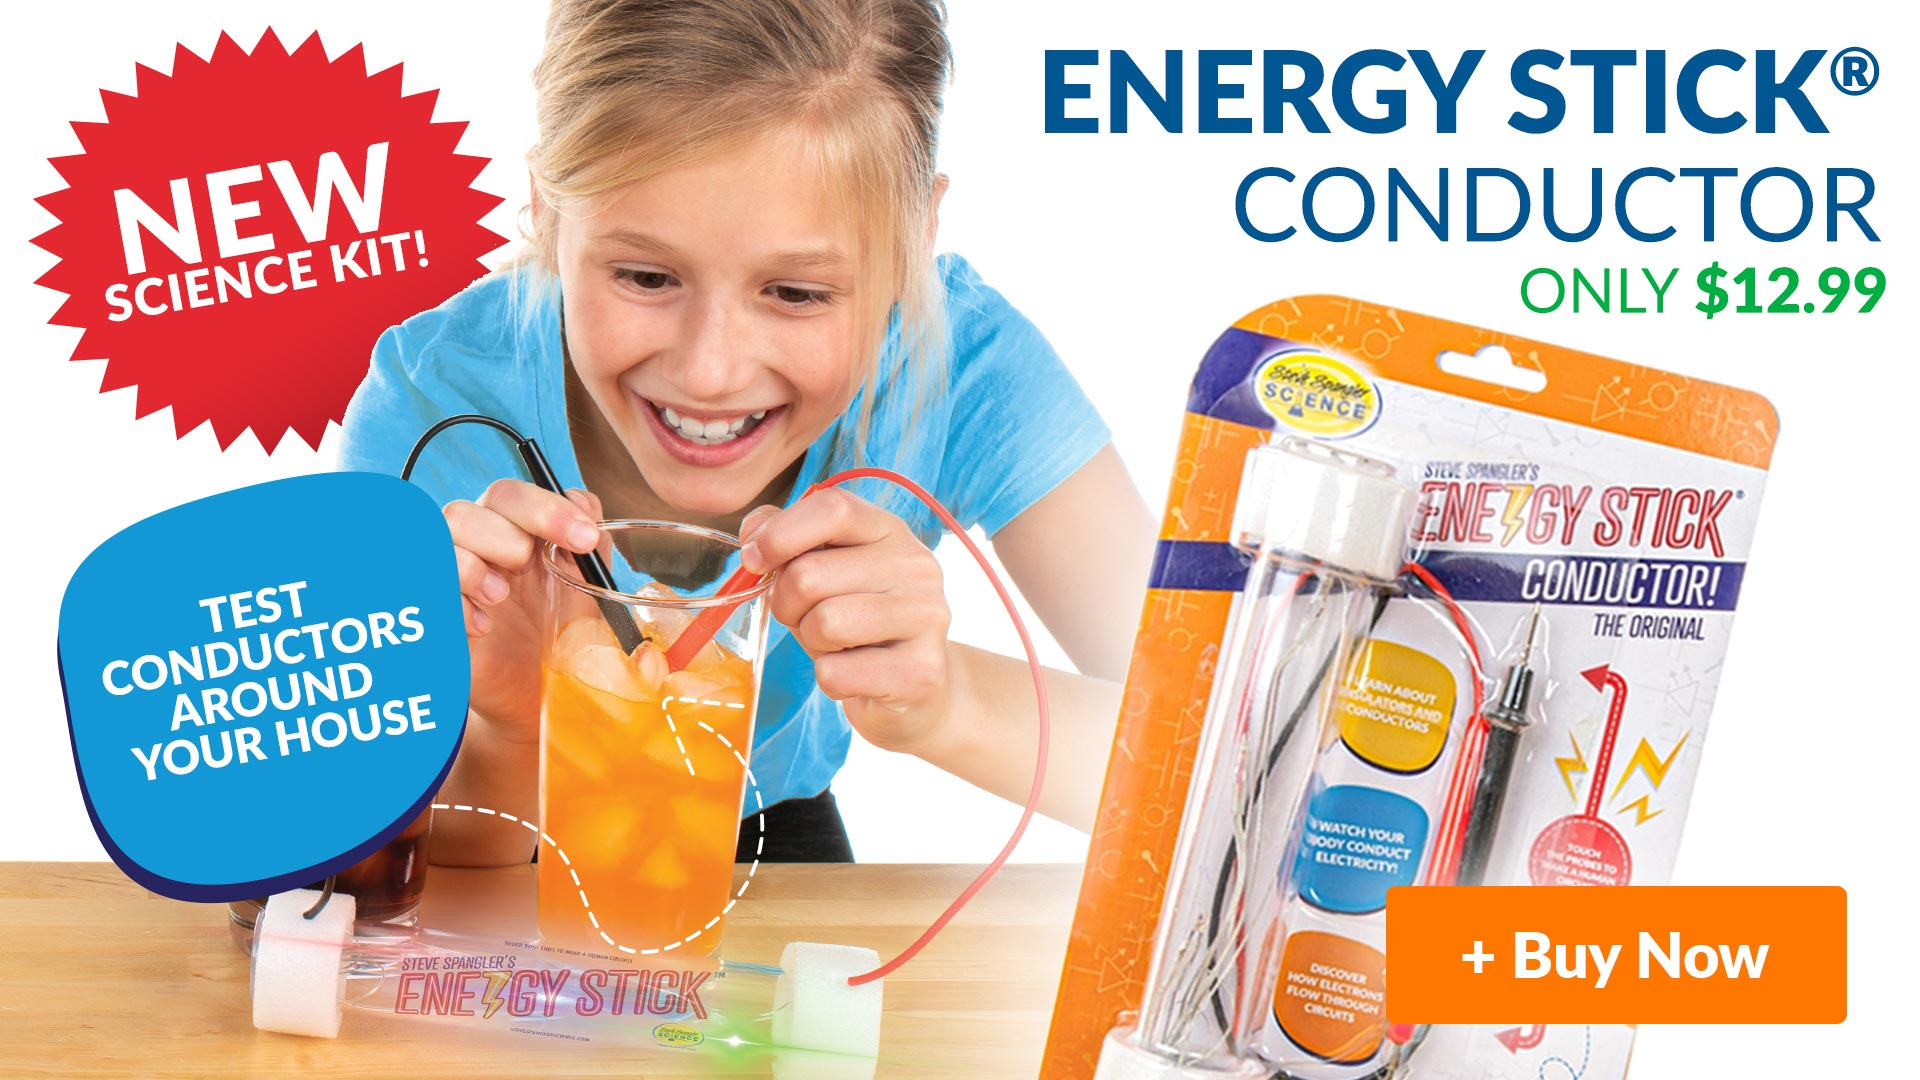 Energy Stick Conductor